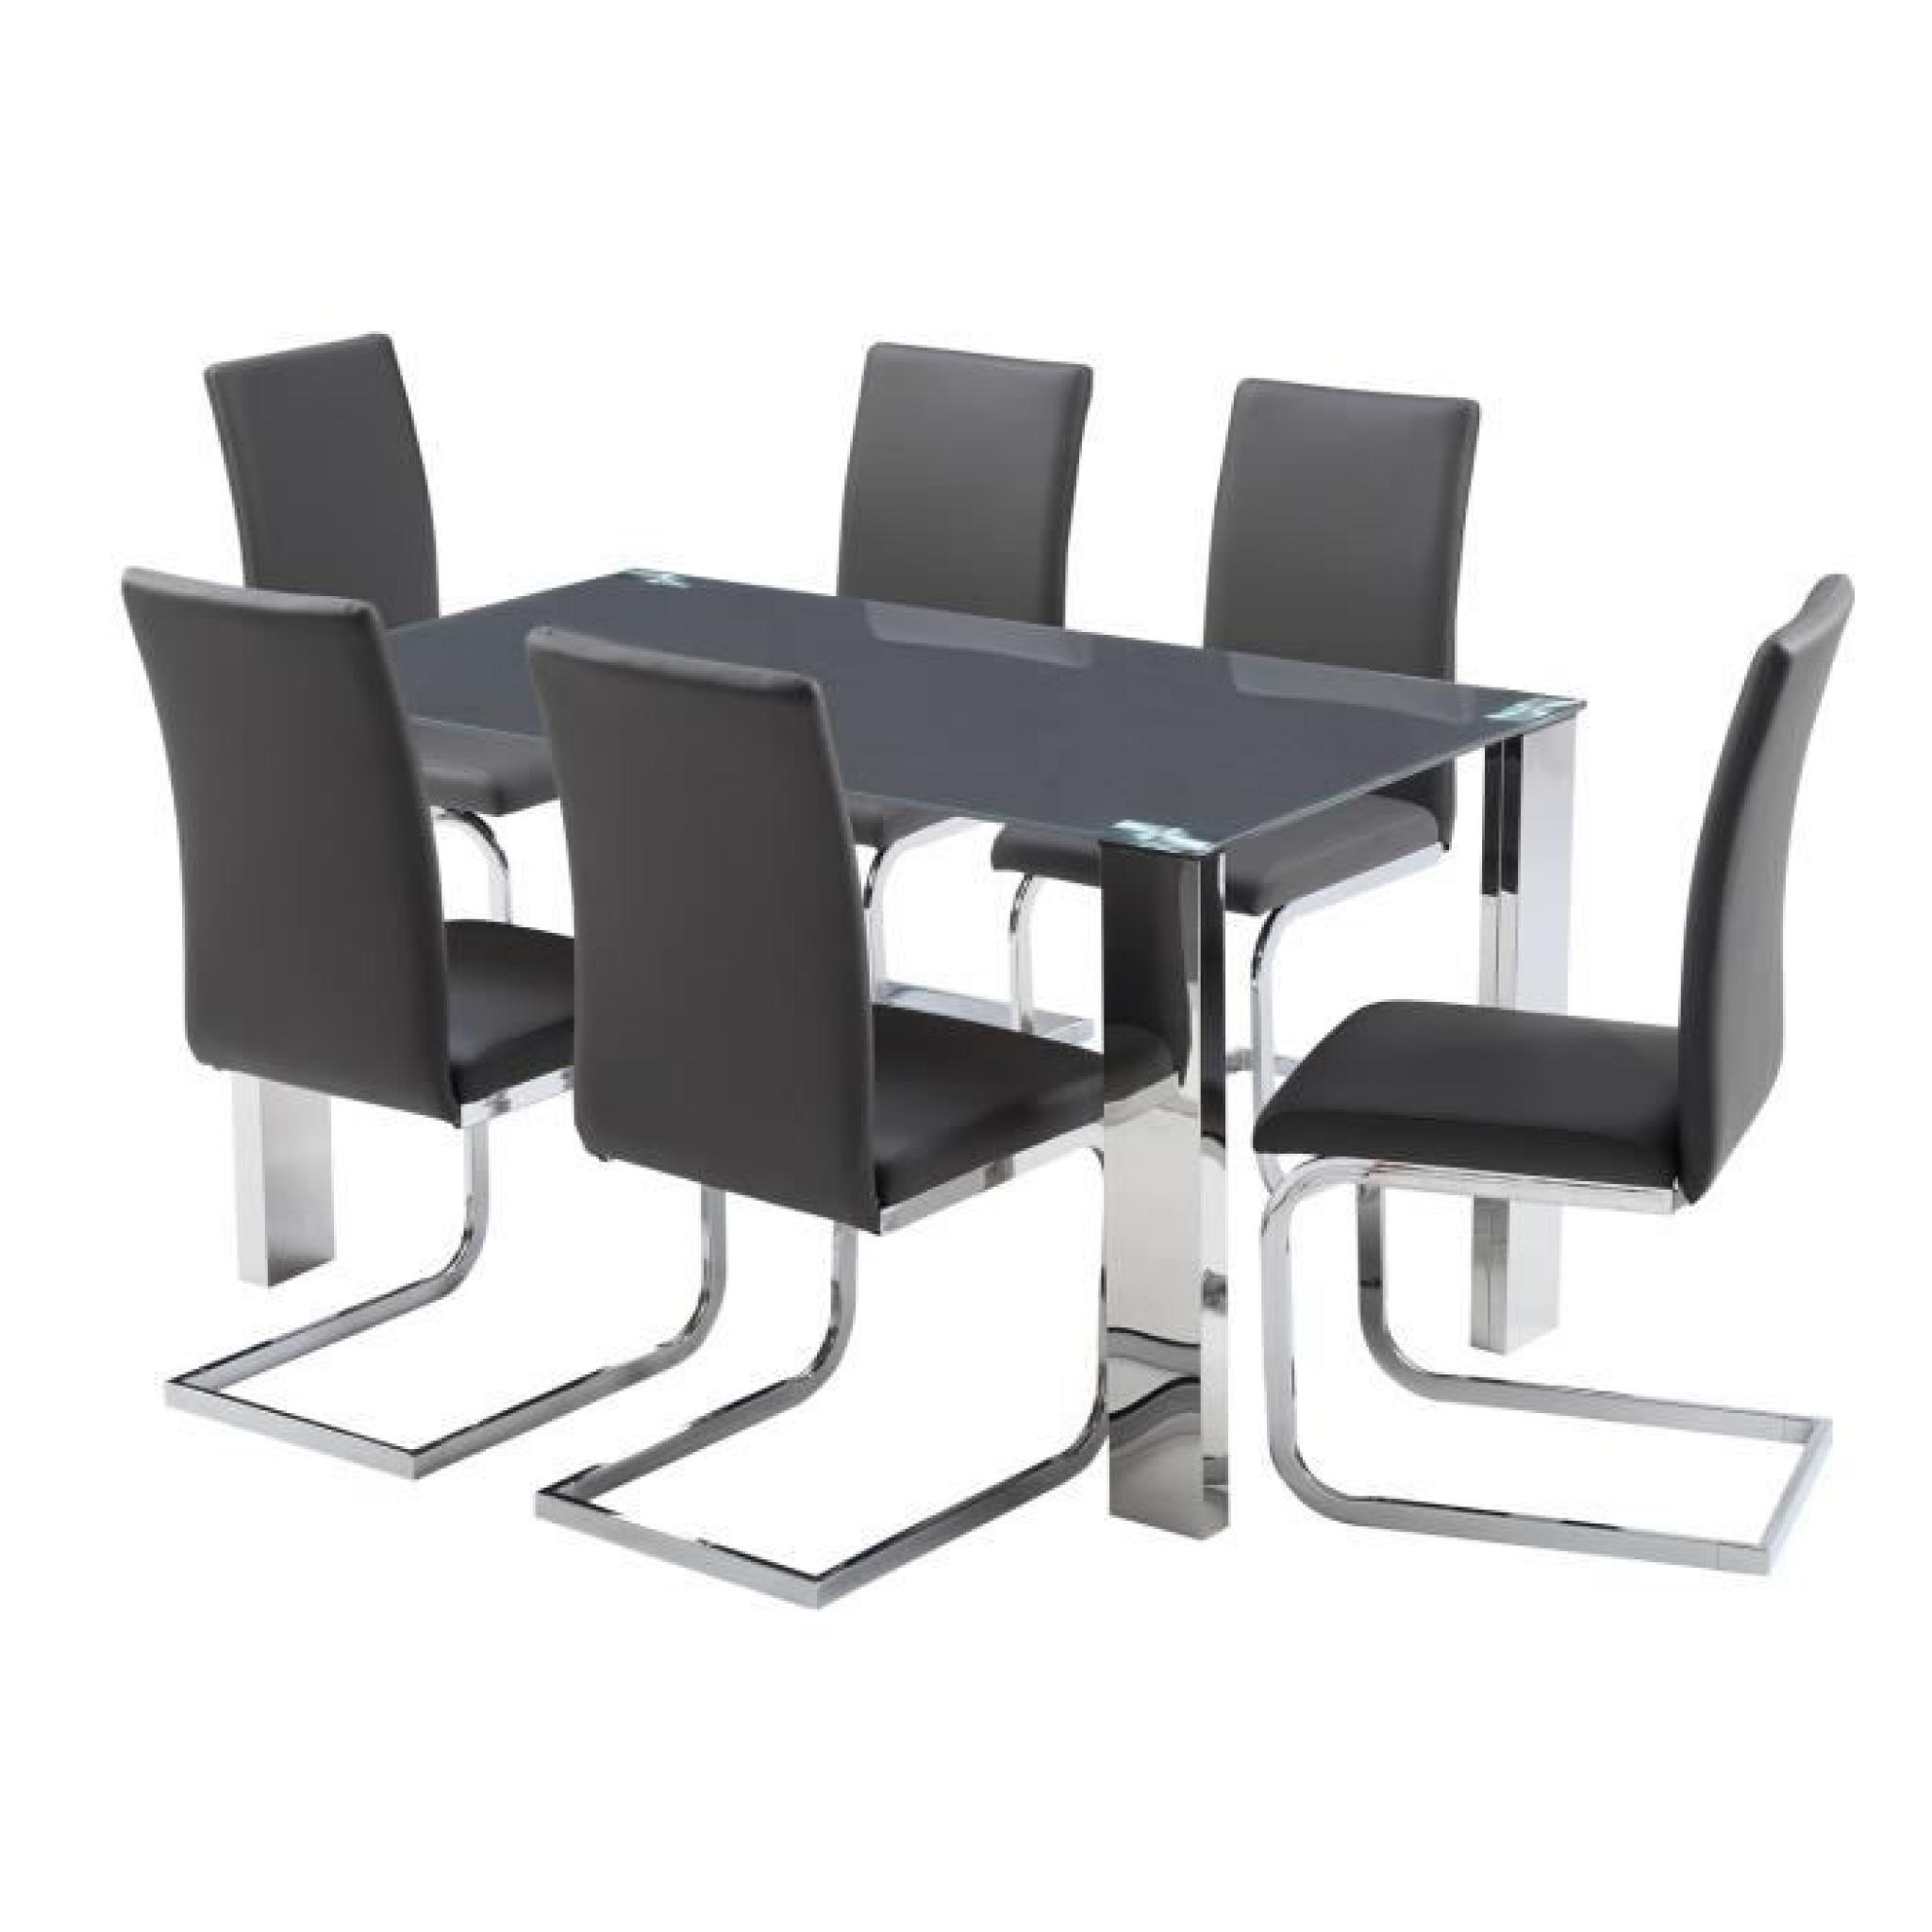 Divine ensemble table manger 6 chaises en pvc gris for Ensemble table salle a manger chaises